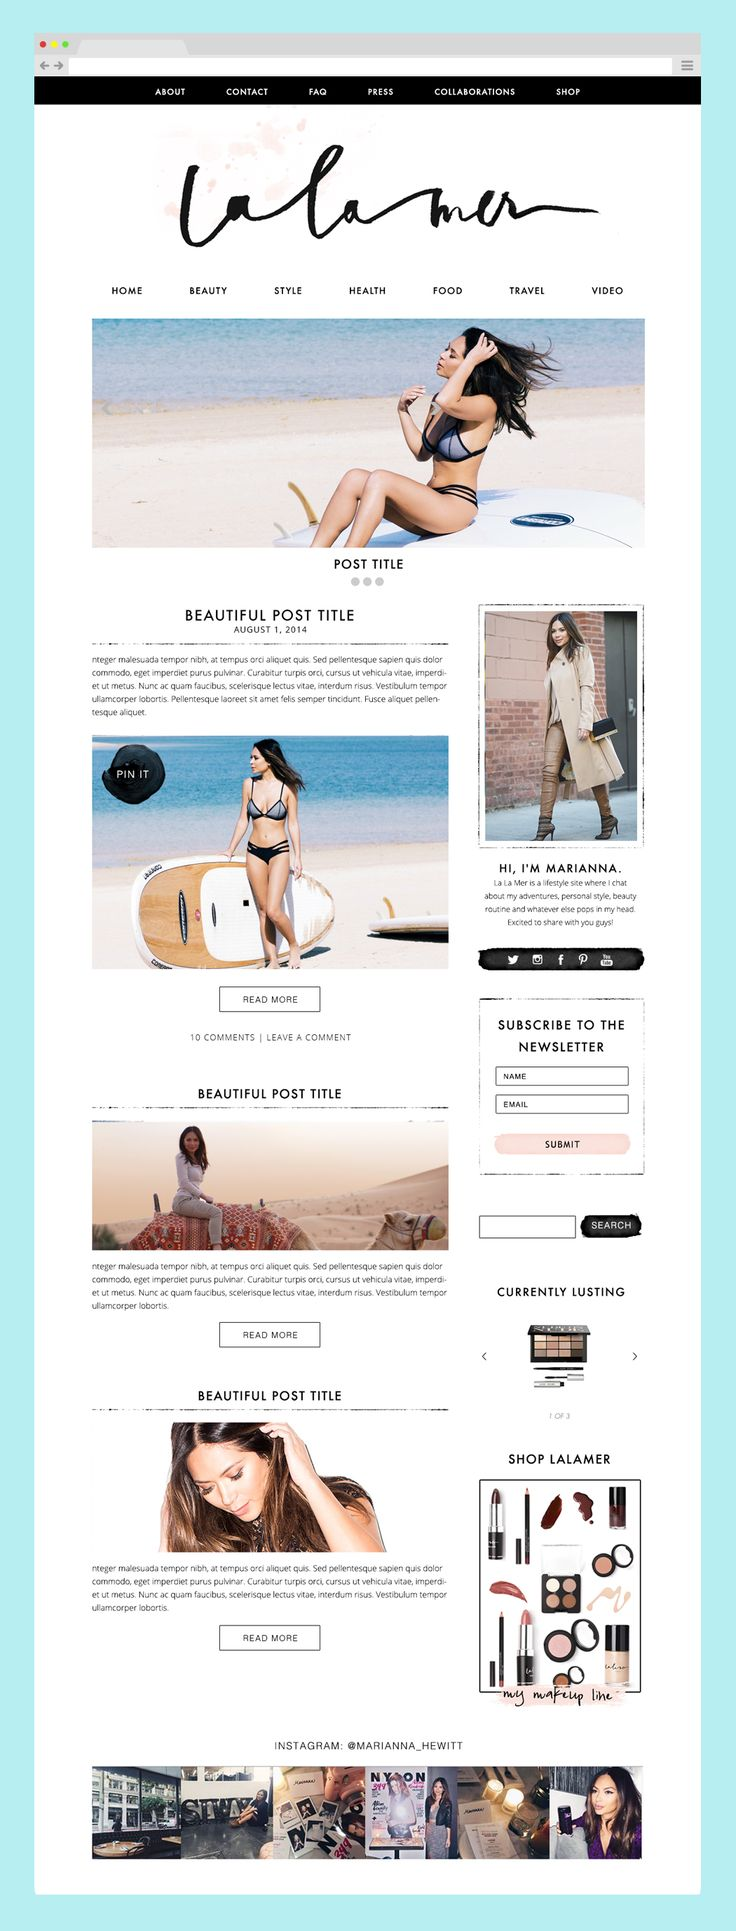 Blog Design for La La Mer / Marianna Hewitt by The Nectar Collective #blogdesign #branding